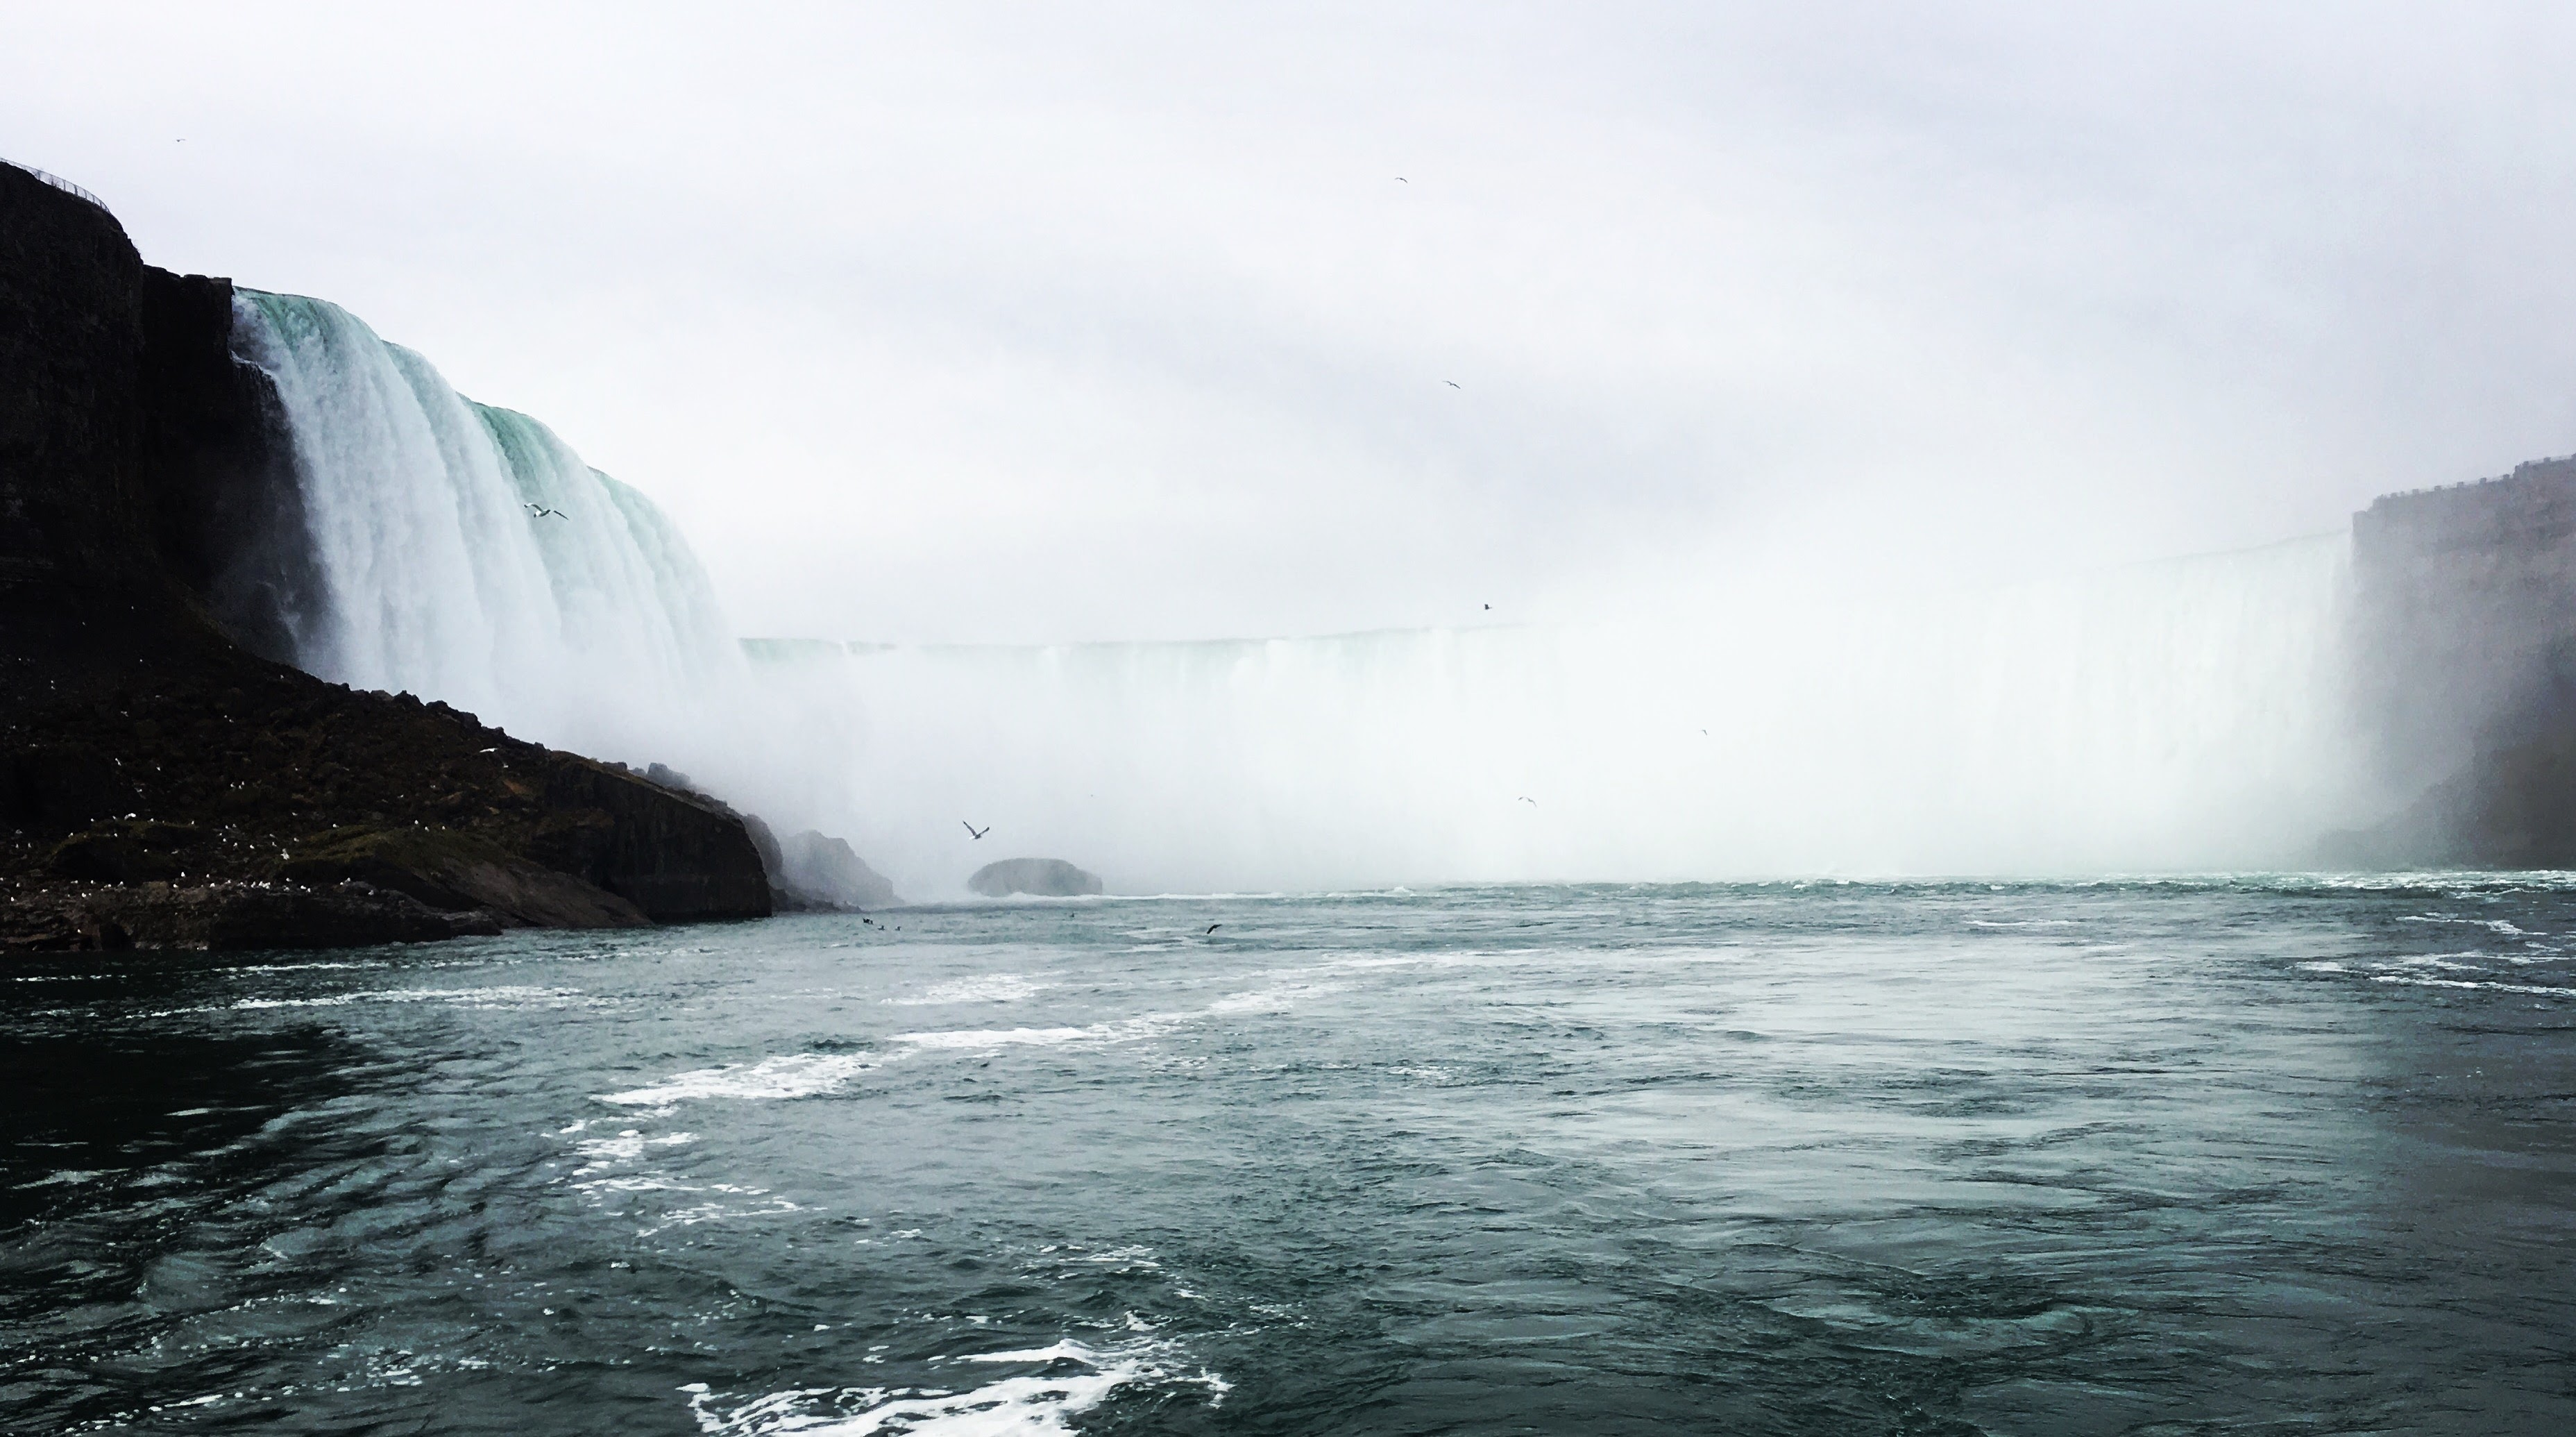 View of Niagara Falls from the Maid of the Mist